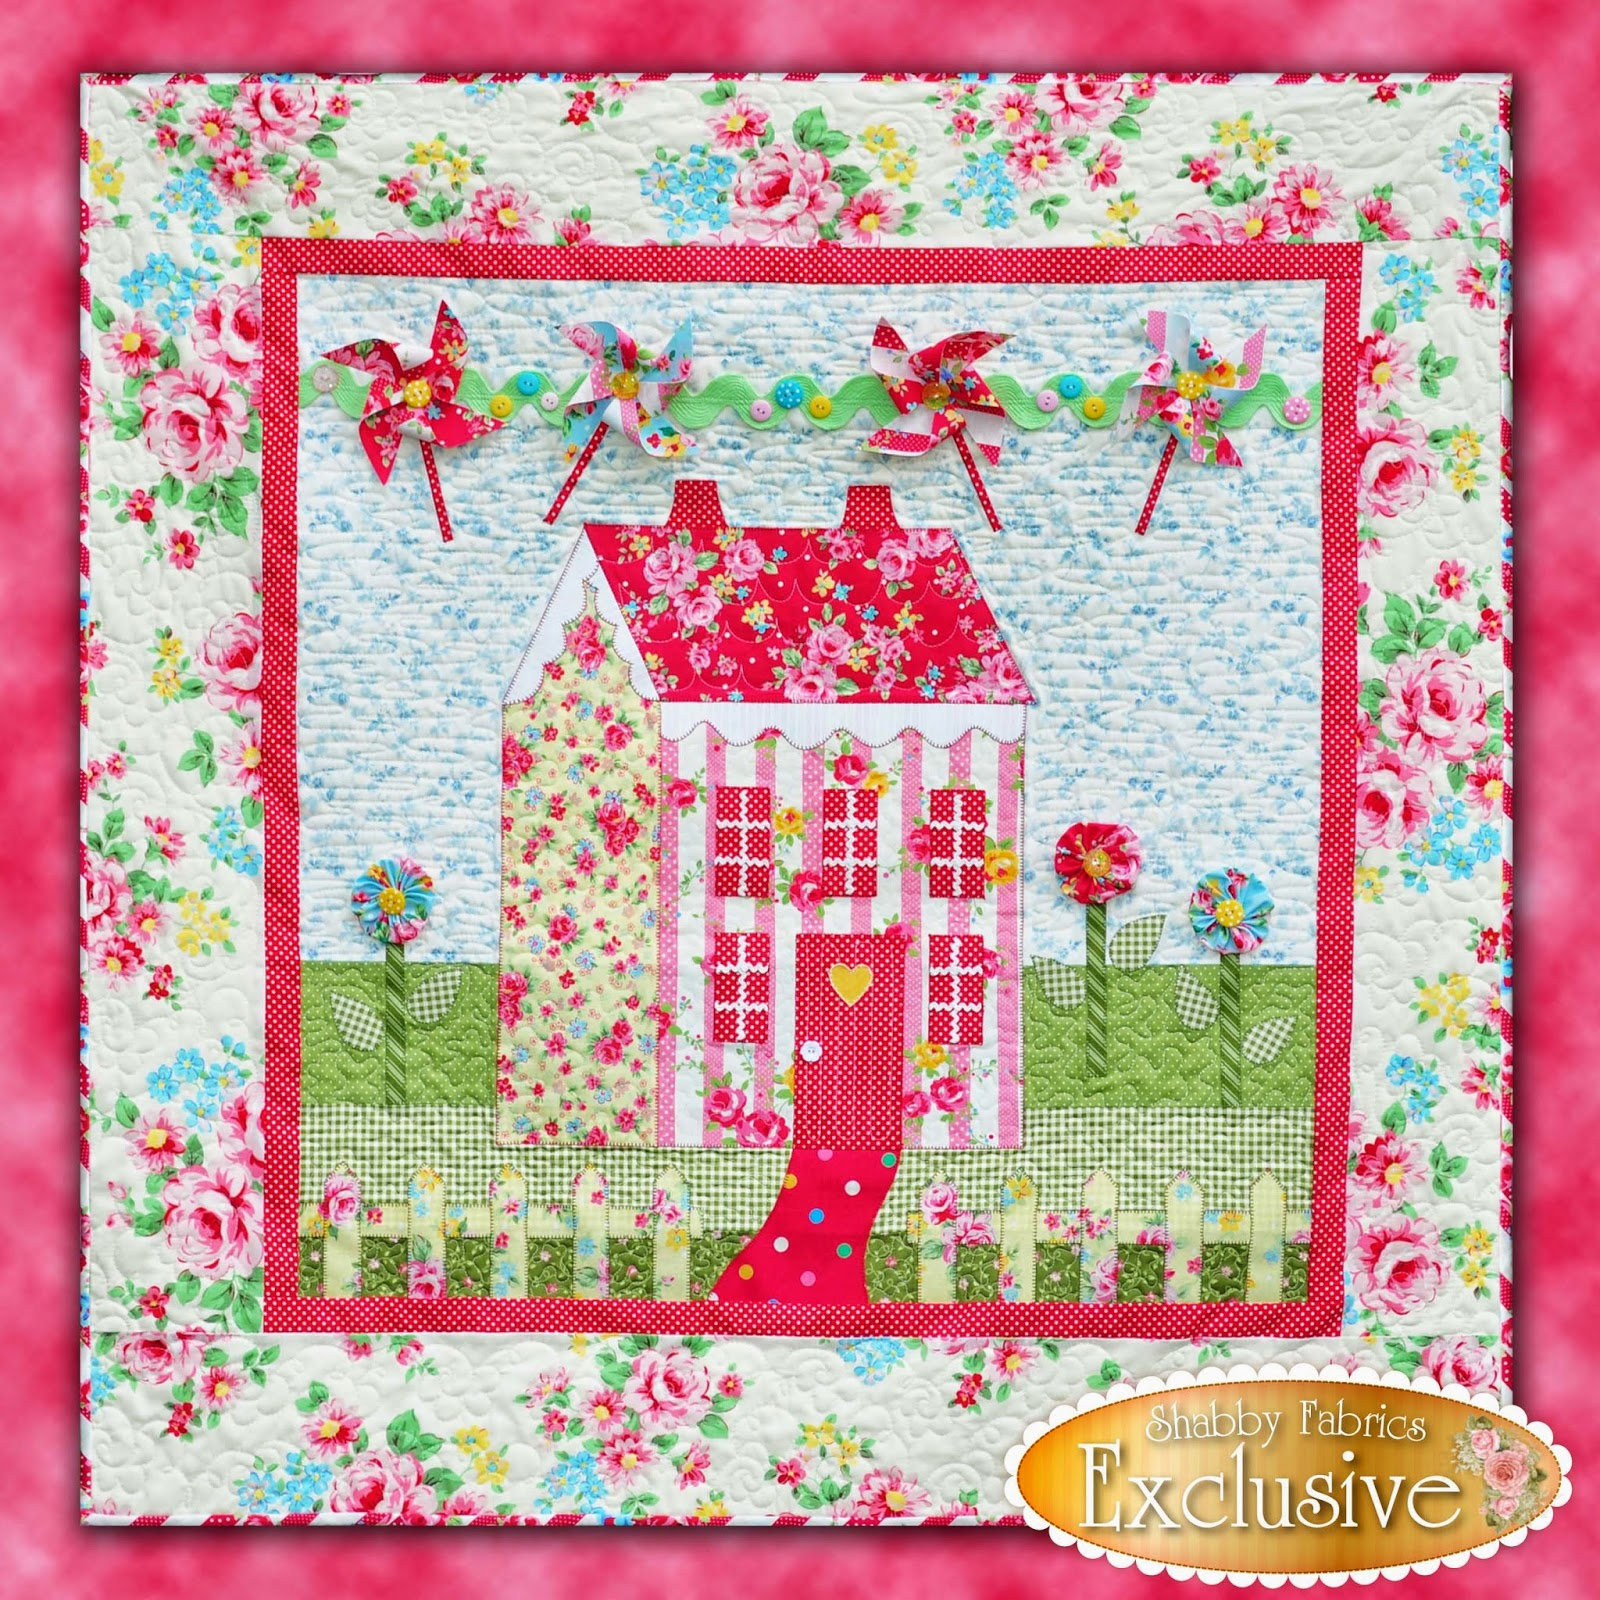 Little Garden House in Spring | Shabby Fabrics Exclusive